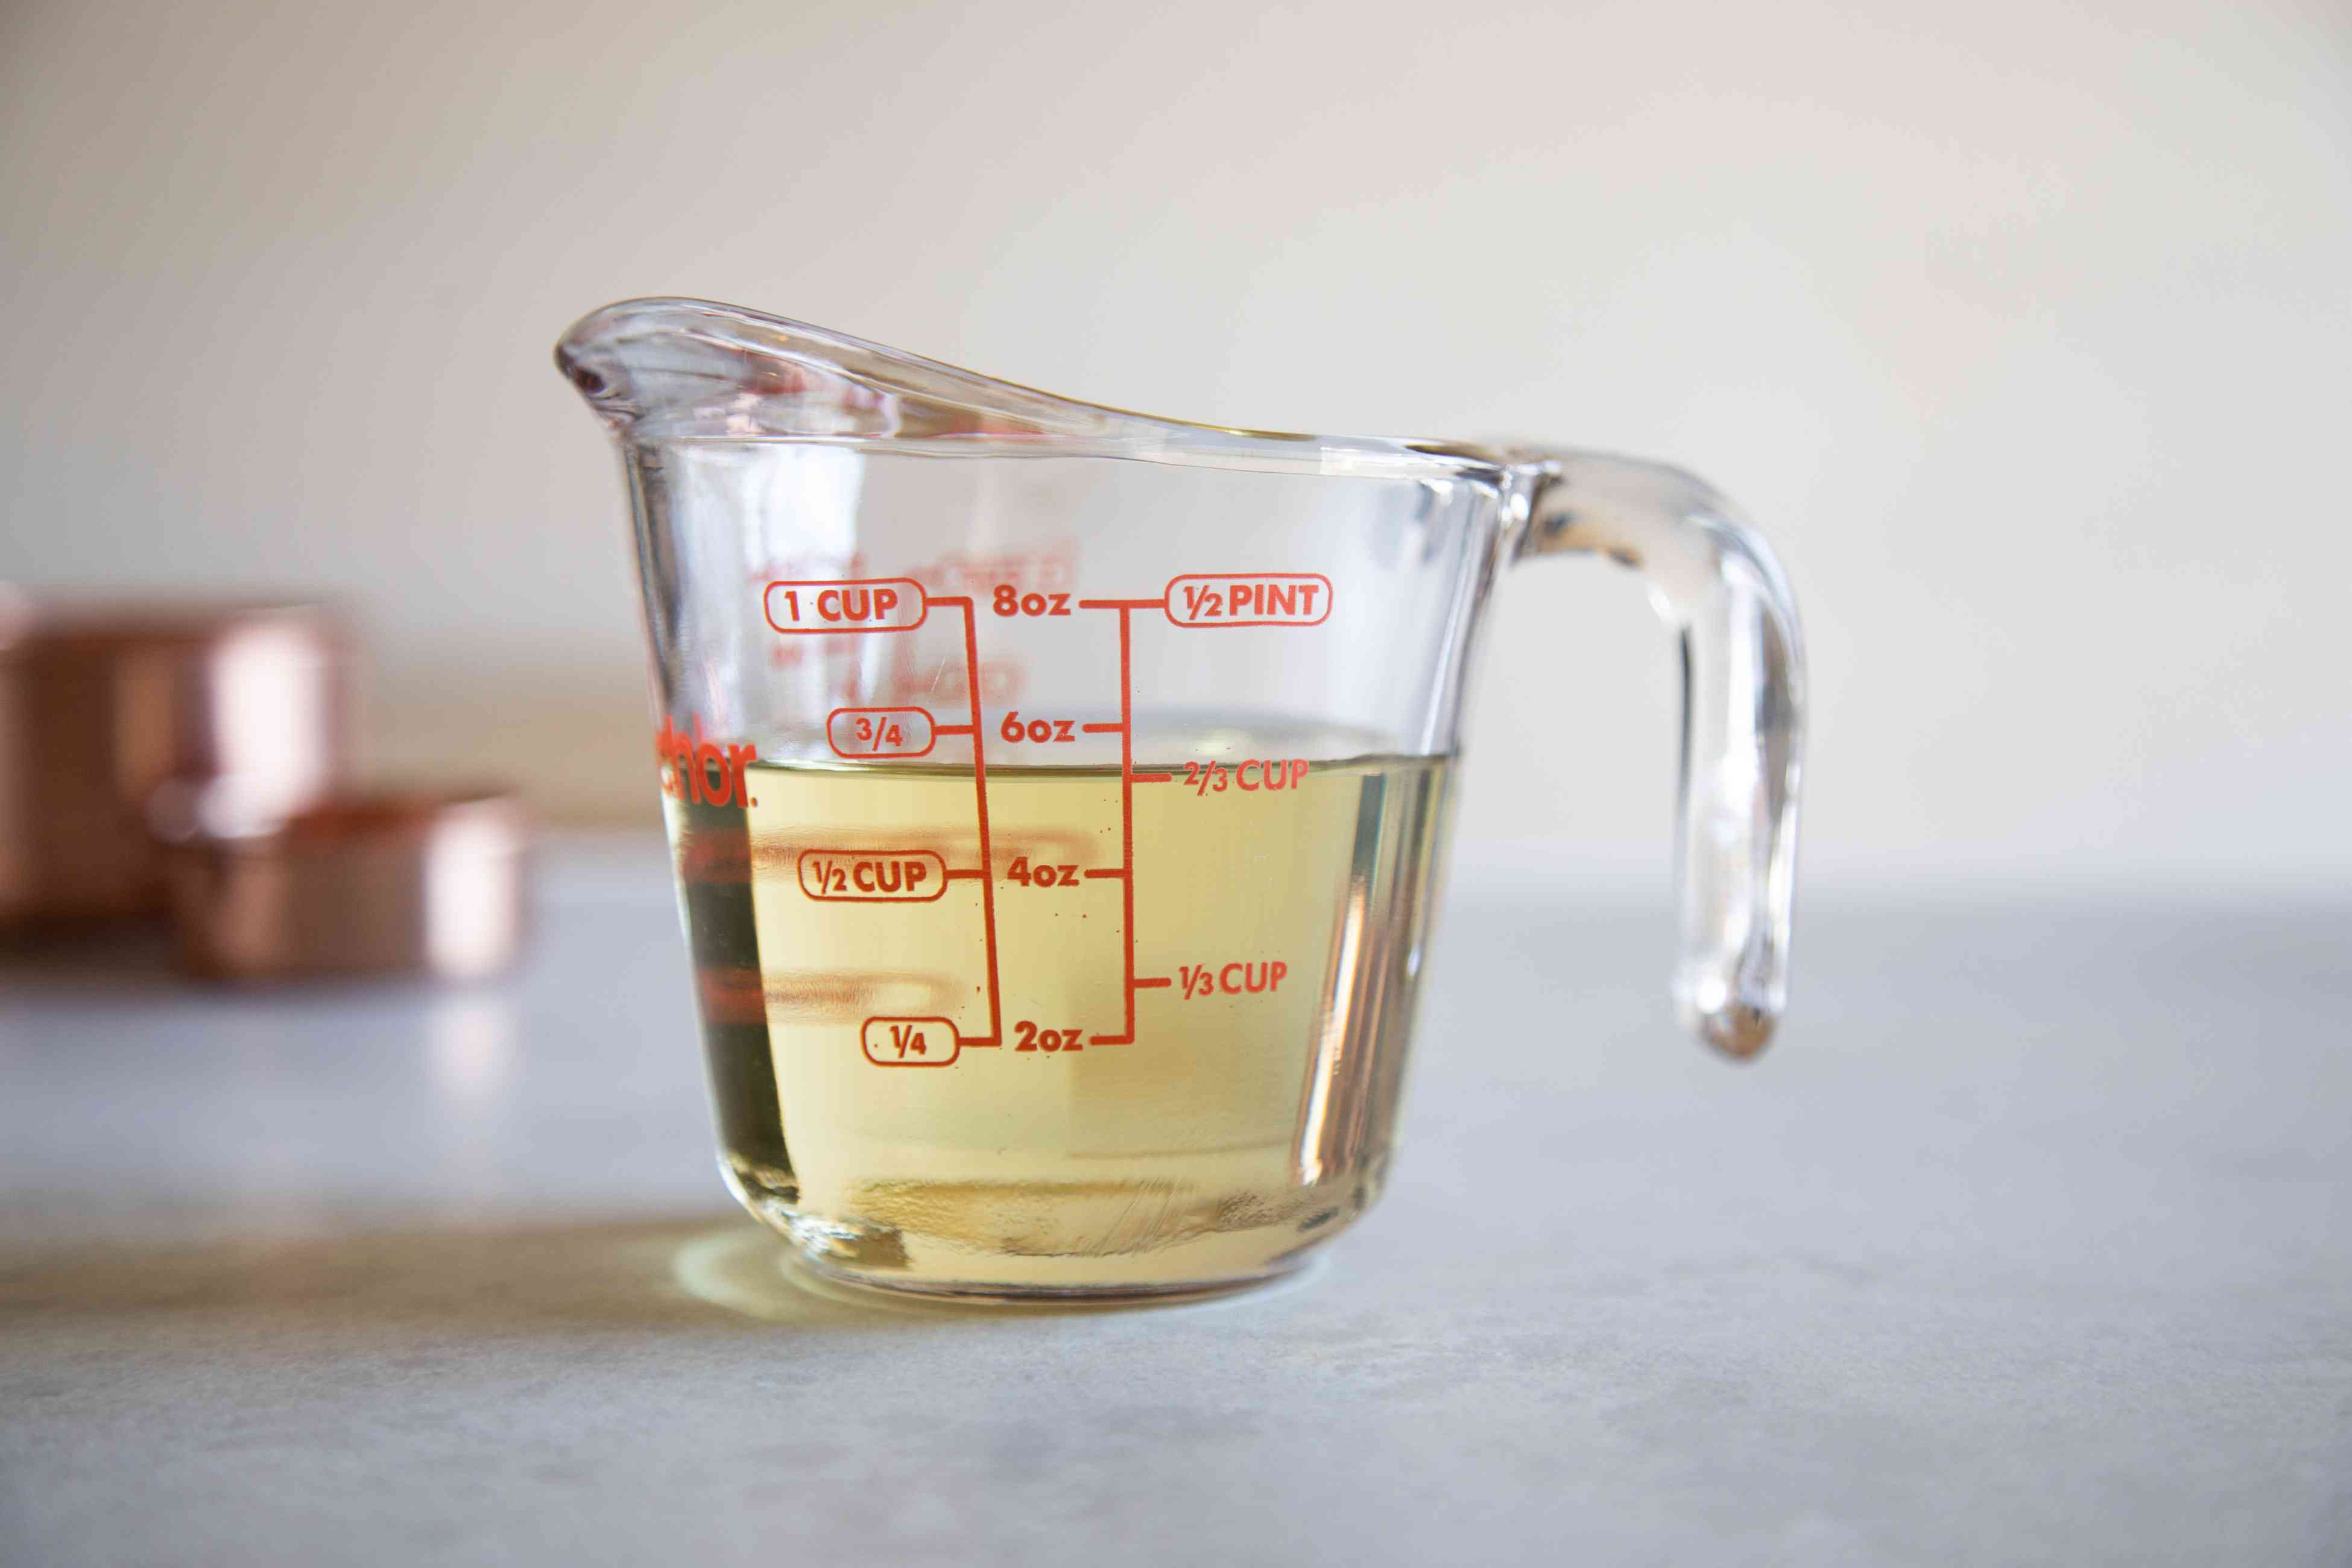 A glass measuring cup with liquid inside to show how to measure by weight and volume.